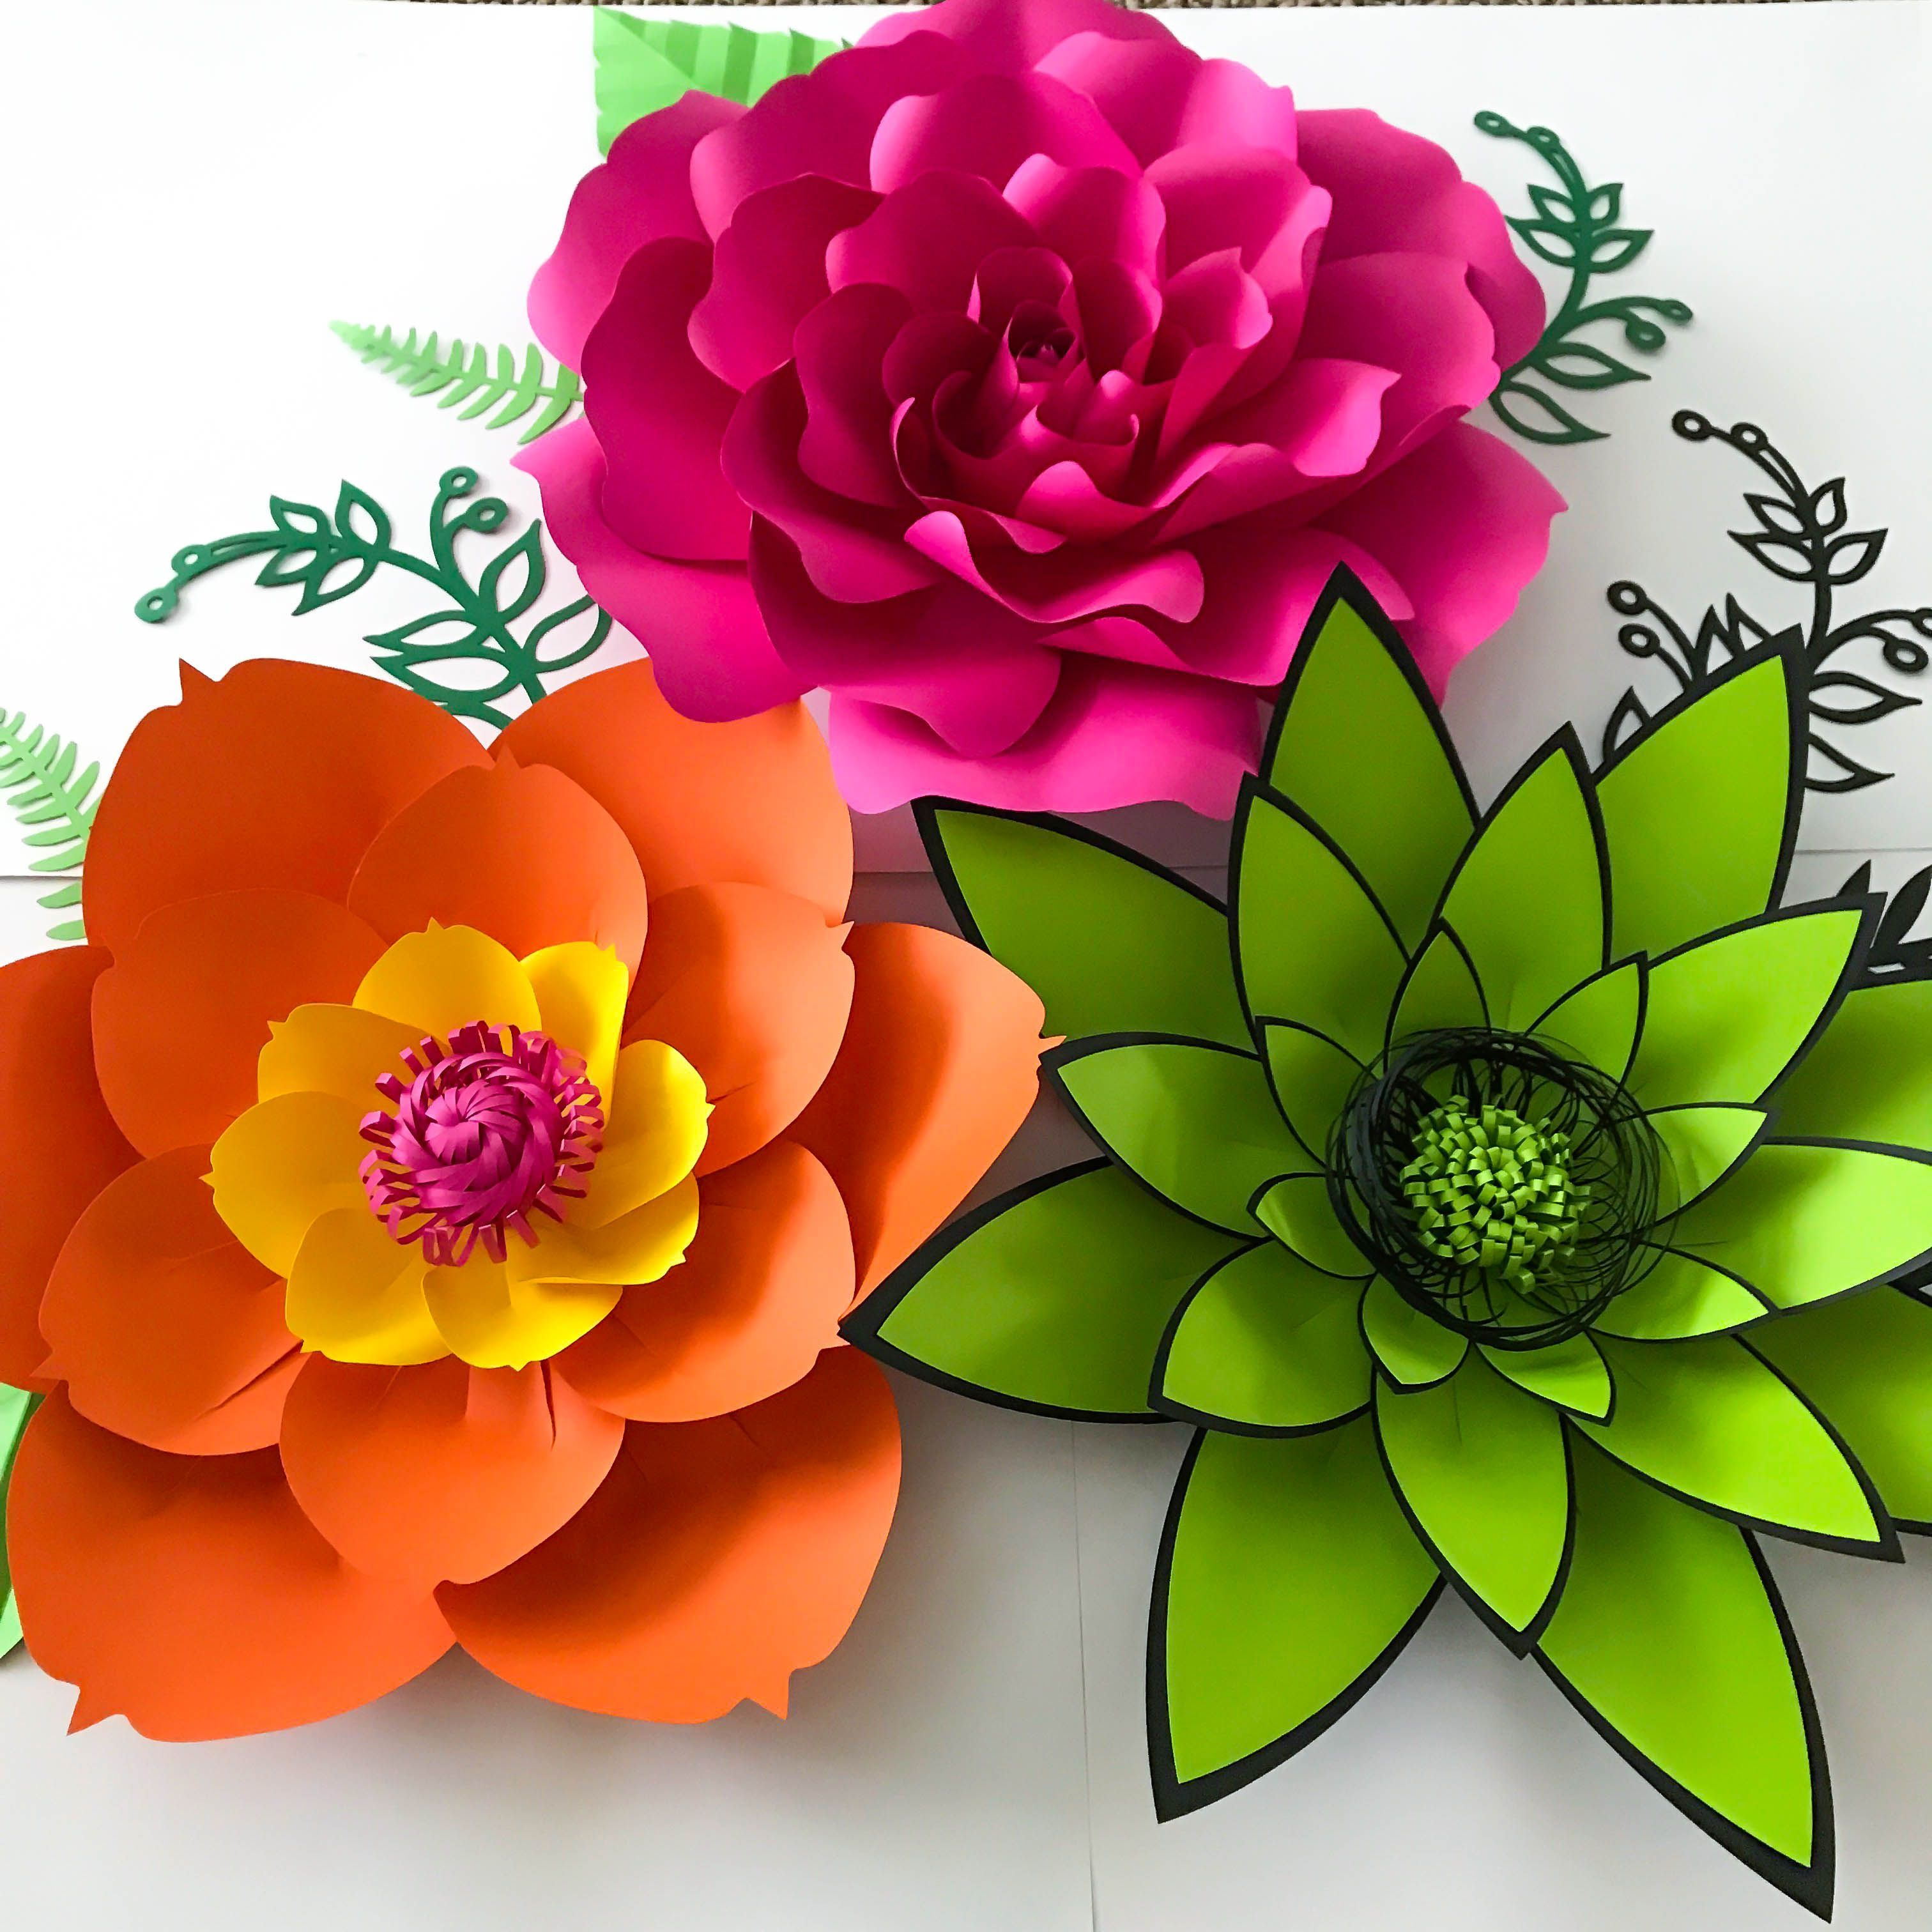 Start your own paper flower business and make money from the comfort of your home using The Crafty Sagittarius Premium Paper flower templates